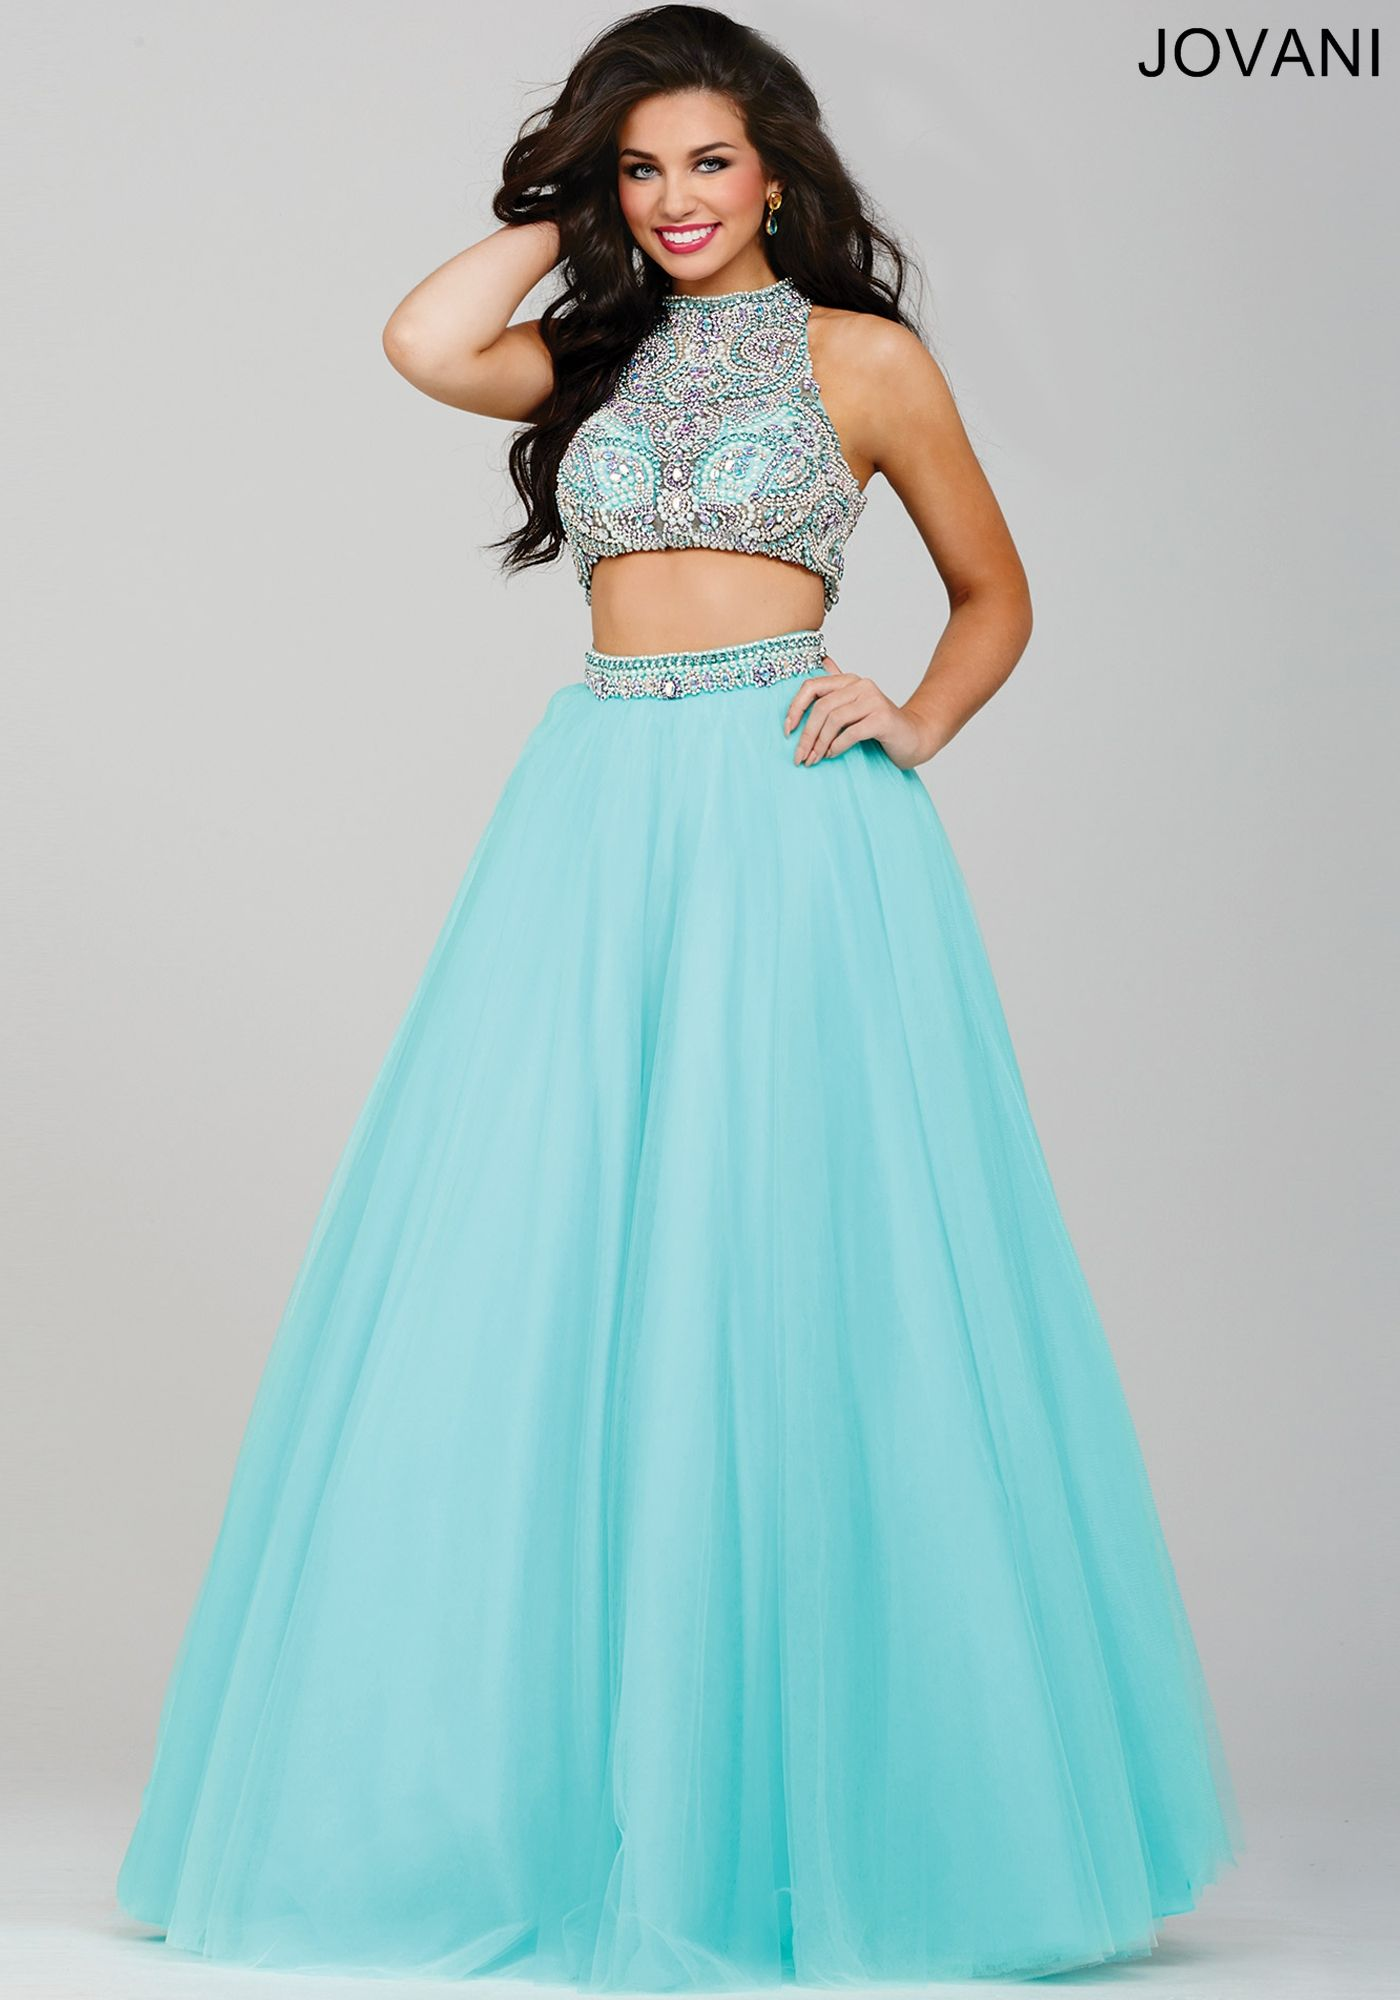 Aqua Two-Piece Ballgown Prom Dress 33535 | Cool stuff to buy ...